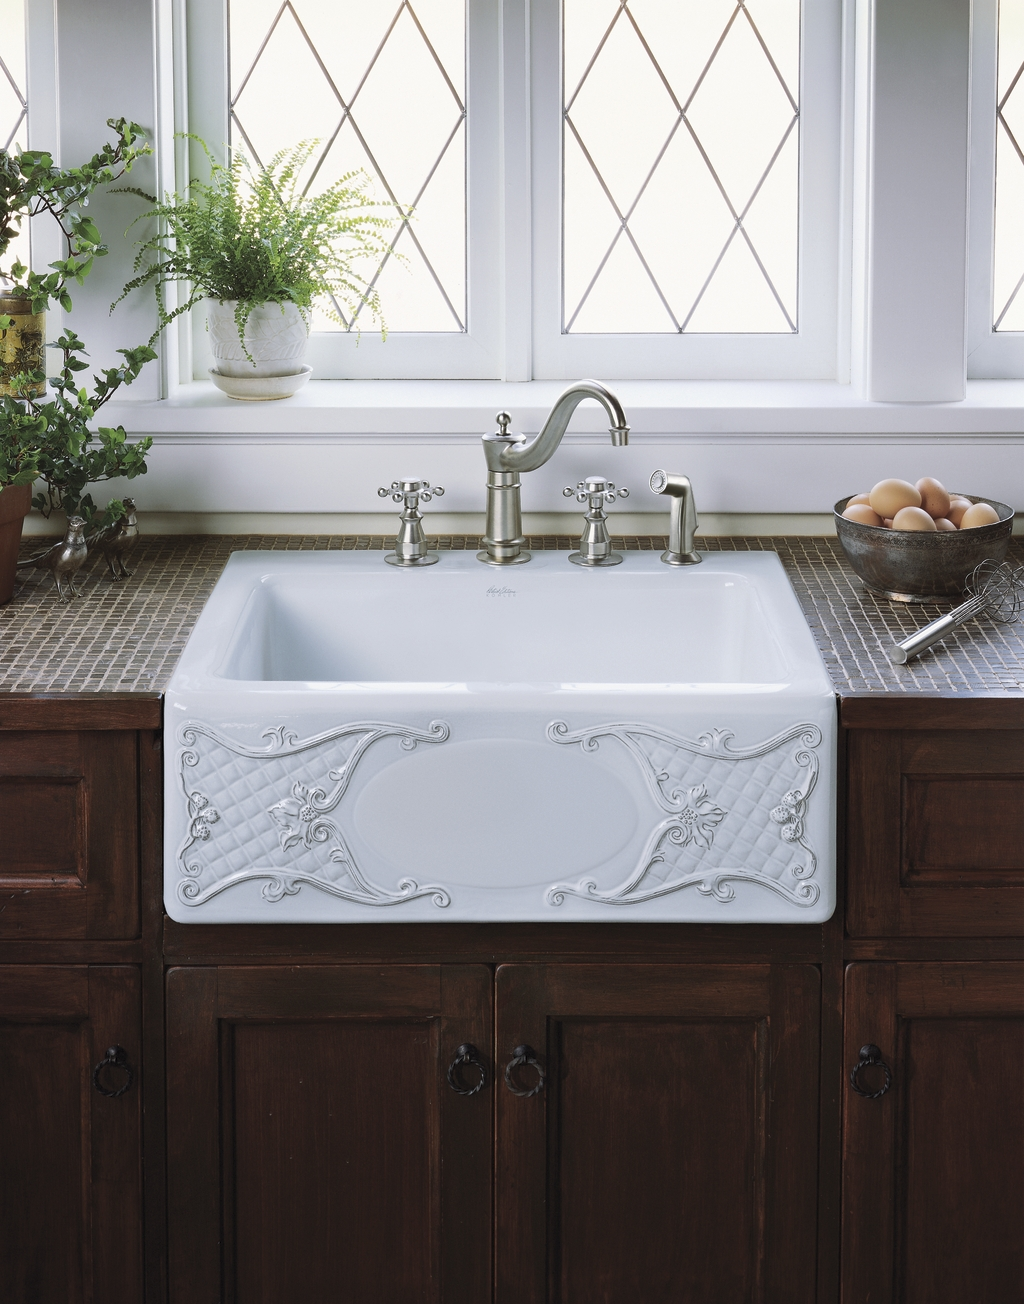 charming white kohler sinks with ornament plus faucet with curved neck plus kitchen cabinet for kitchen ideas